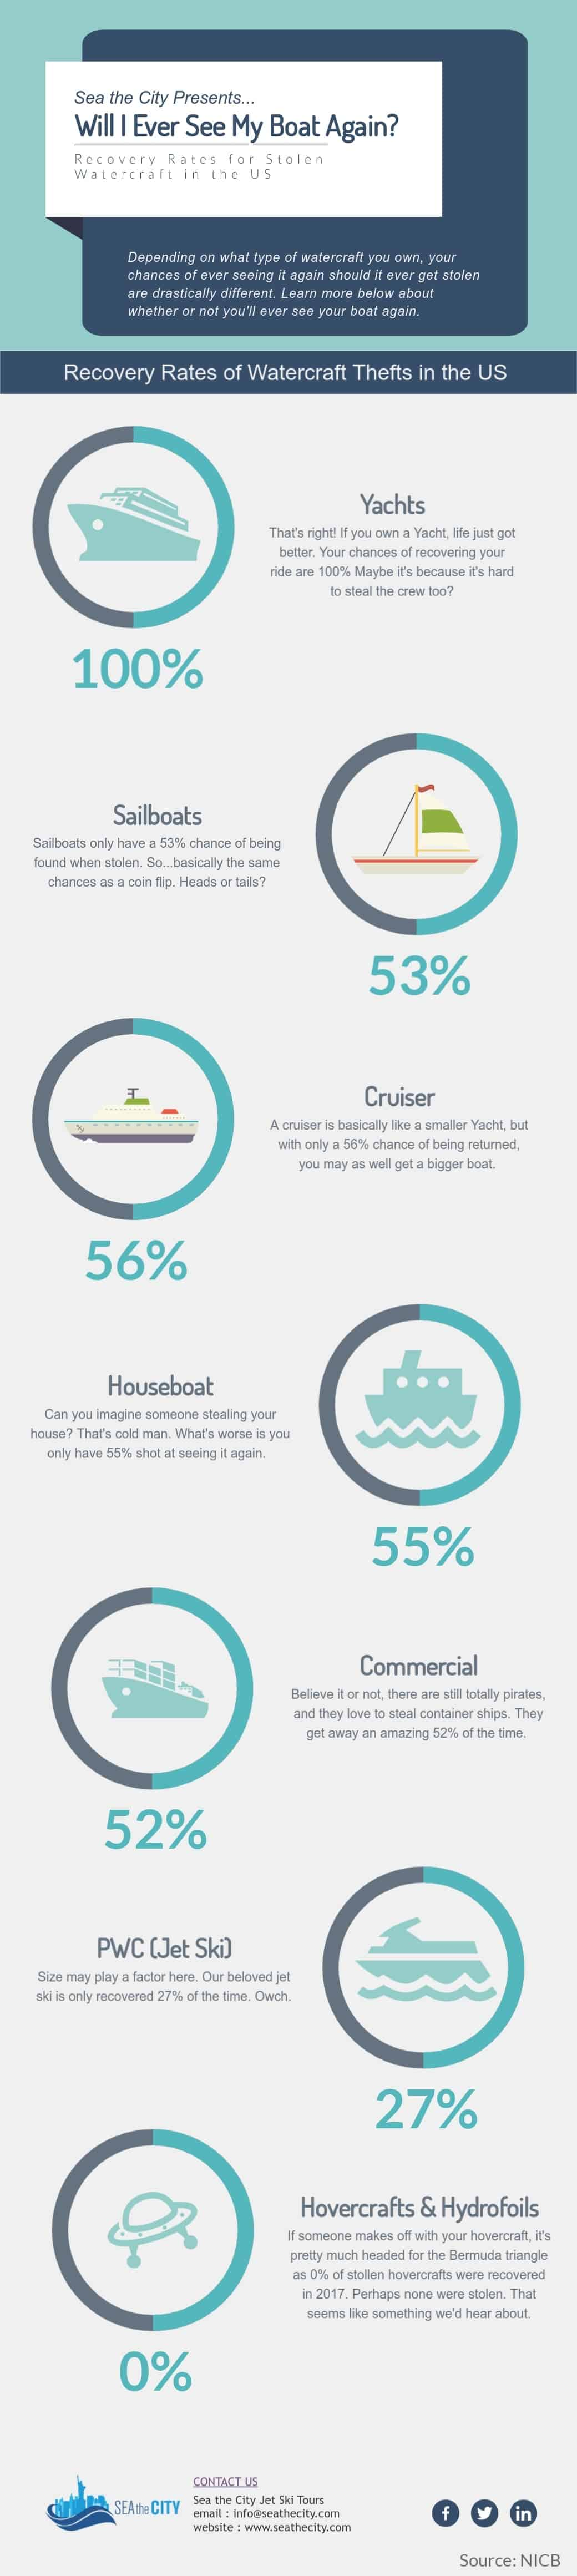 Recovery-Rate-of-Watercraft-Thefts-in-the-United-States-infographic-plaza